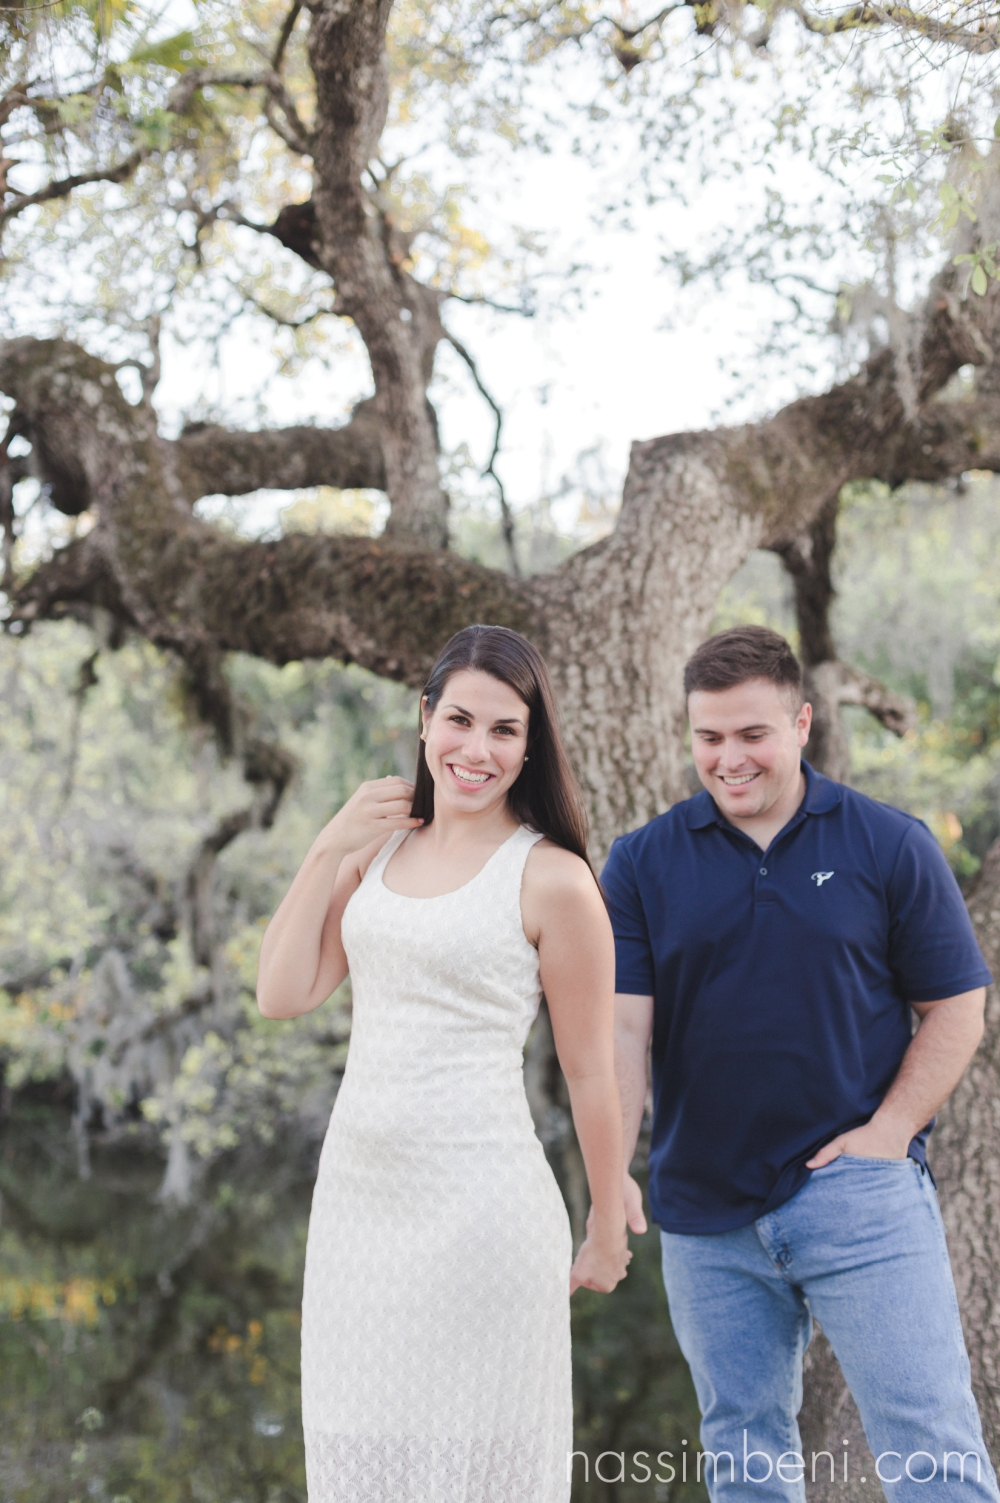 White City Park Engagement Photos in fort pierce florida by Vero beach wedding photographer Nassimbeni Photography